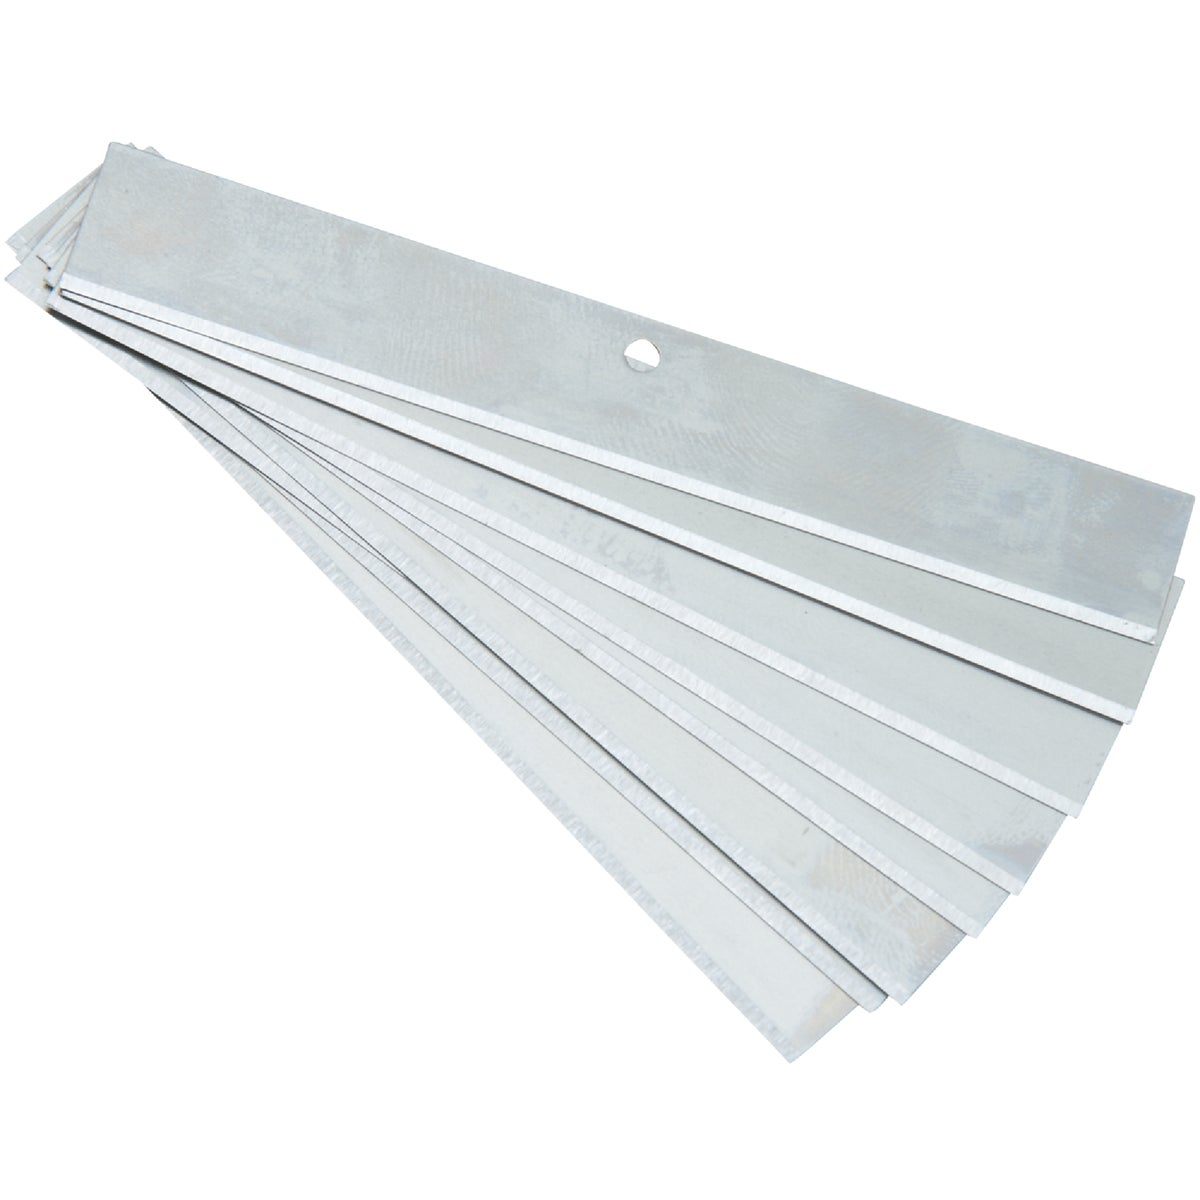 "10PK 4"" SCRAPER BLADES - 308323 by Do it Best"